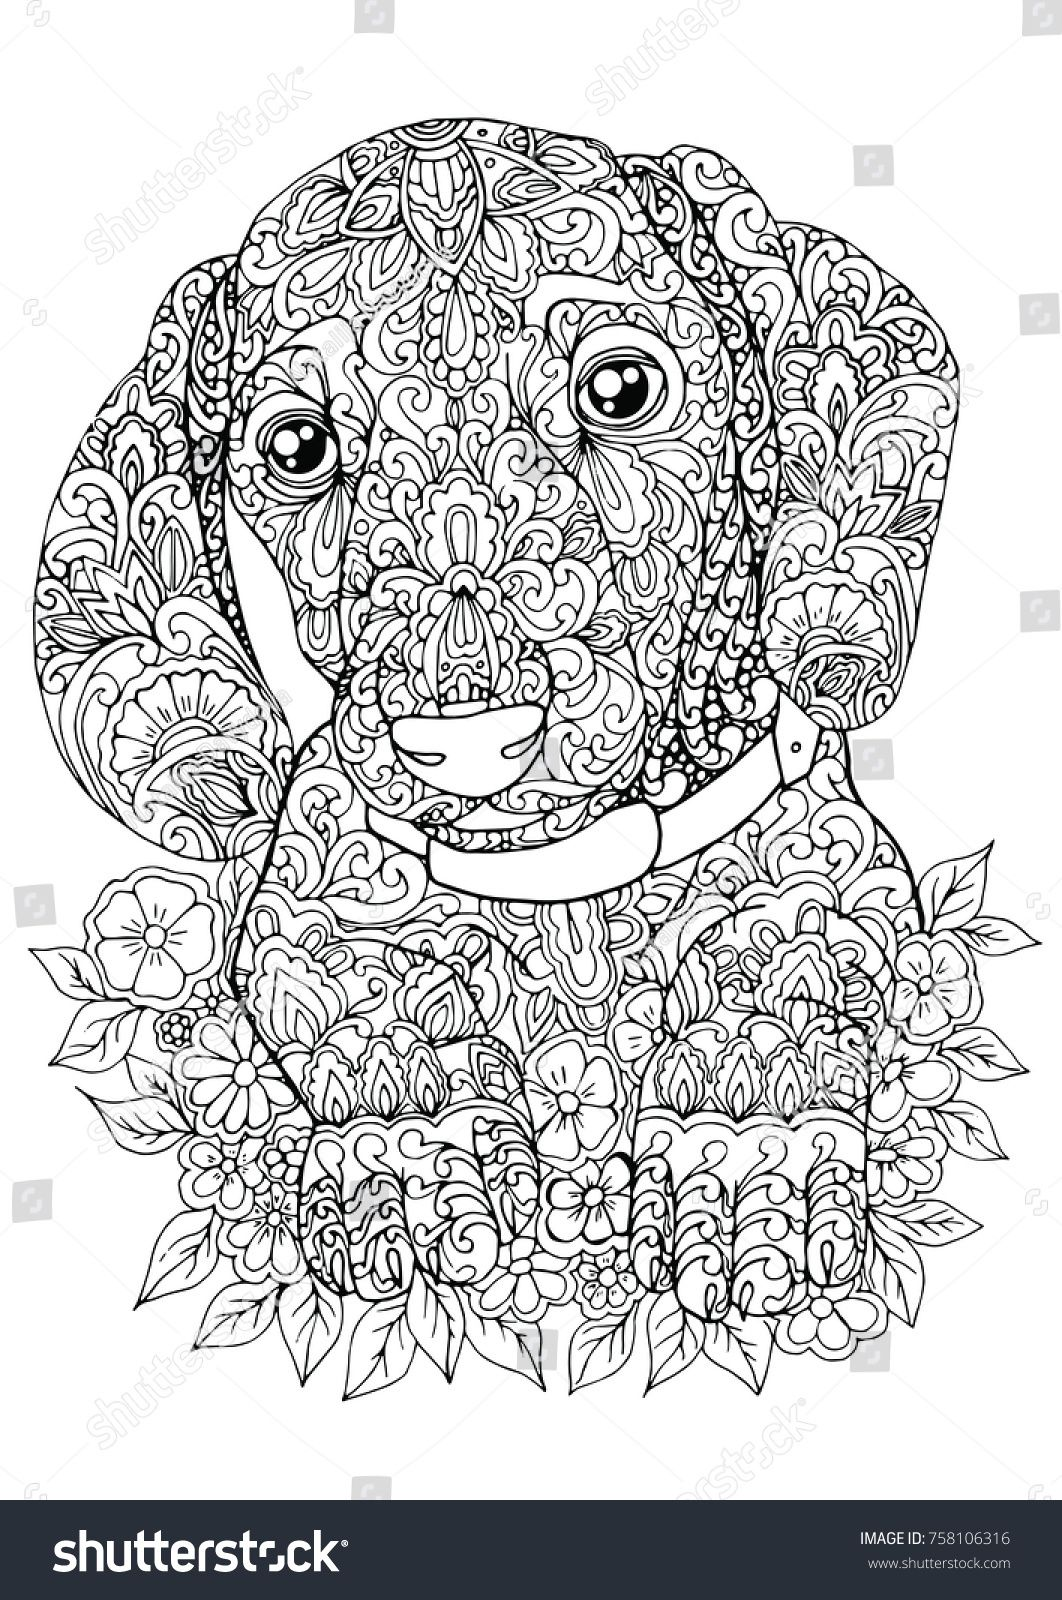 Pin By Reba Grizzle On Coloring Dog Dog Coloring Book Dog Coloring Page Cute Coloring Pages [ 1600 x 1062 Pixel ]